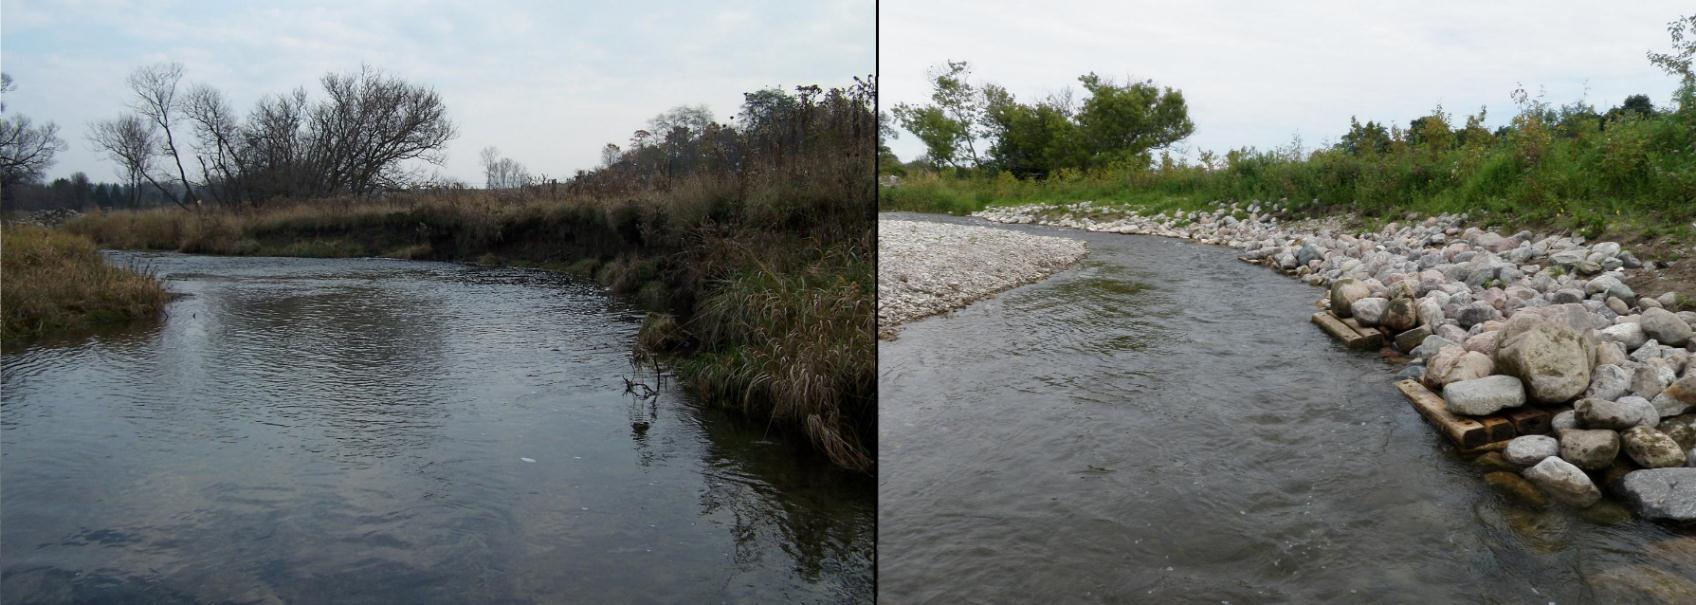 Figure 4. Bank stabilization project before (left) and after 1 year (right). Note the stream channel has narrowed and the water is much deeper than before the project was undertaken. The point bar (gravel) on the left of the after photo was deposited naturally after the first big rainfall in the spring.